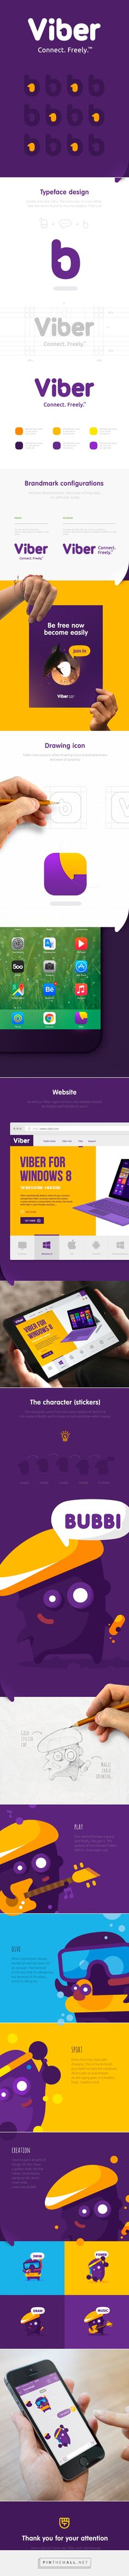 Viber Brand Identity and not only on Behance - - - - - - - - - - - - -... - a grouped images picture - Pin Them All